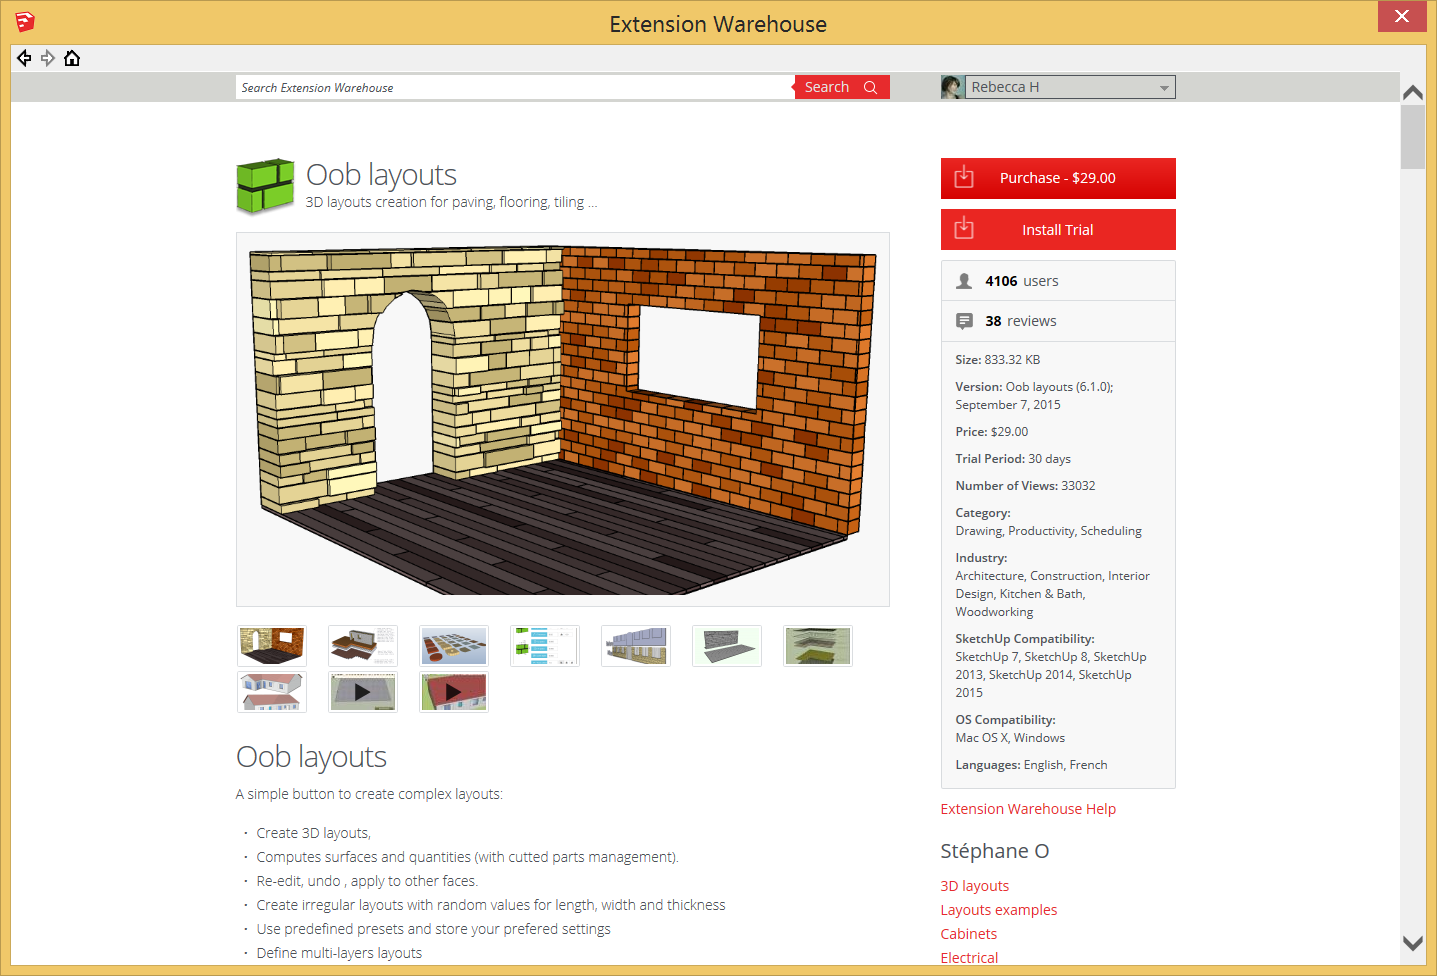 vray for sketchup 2016 free download windows 10